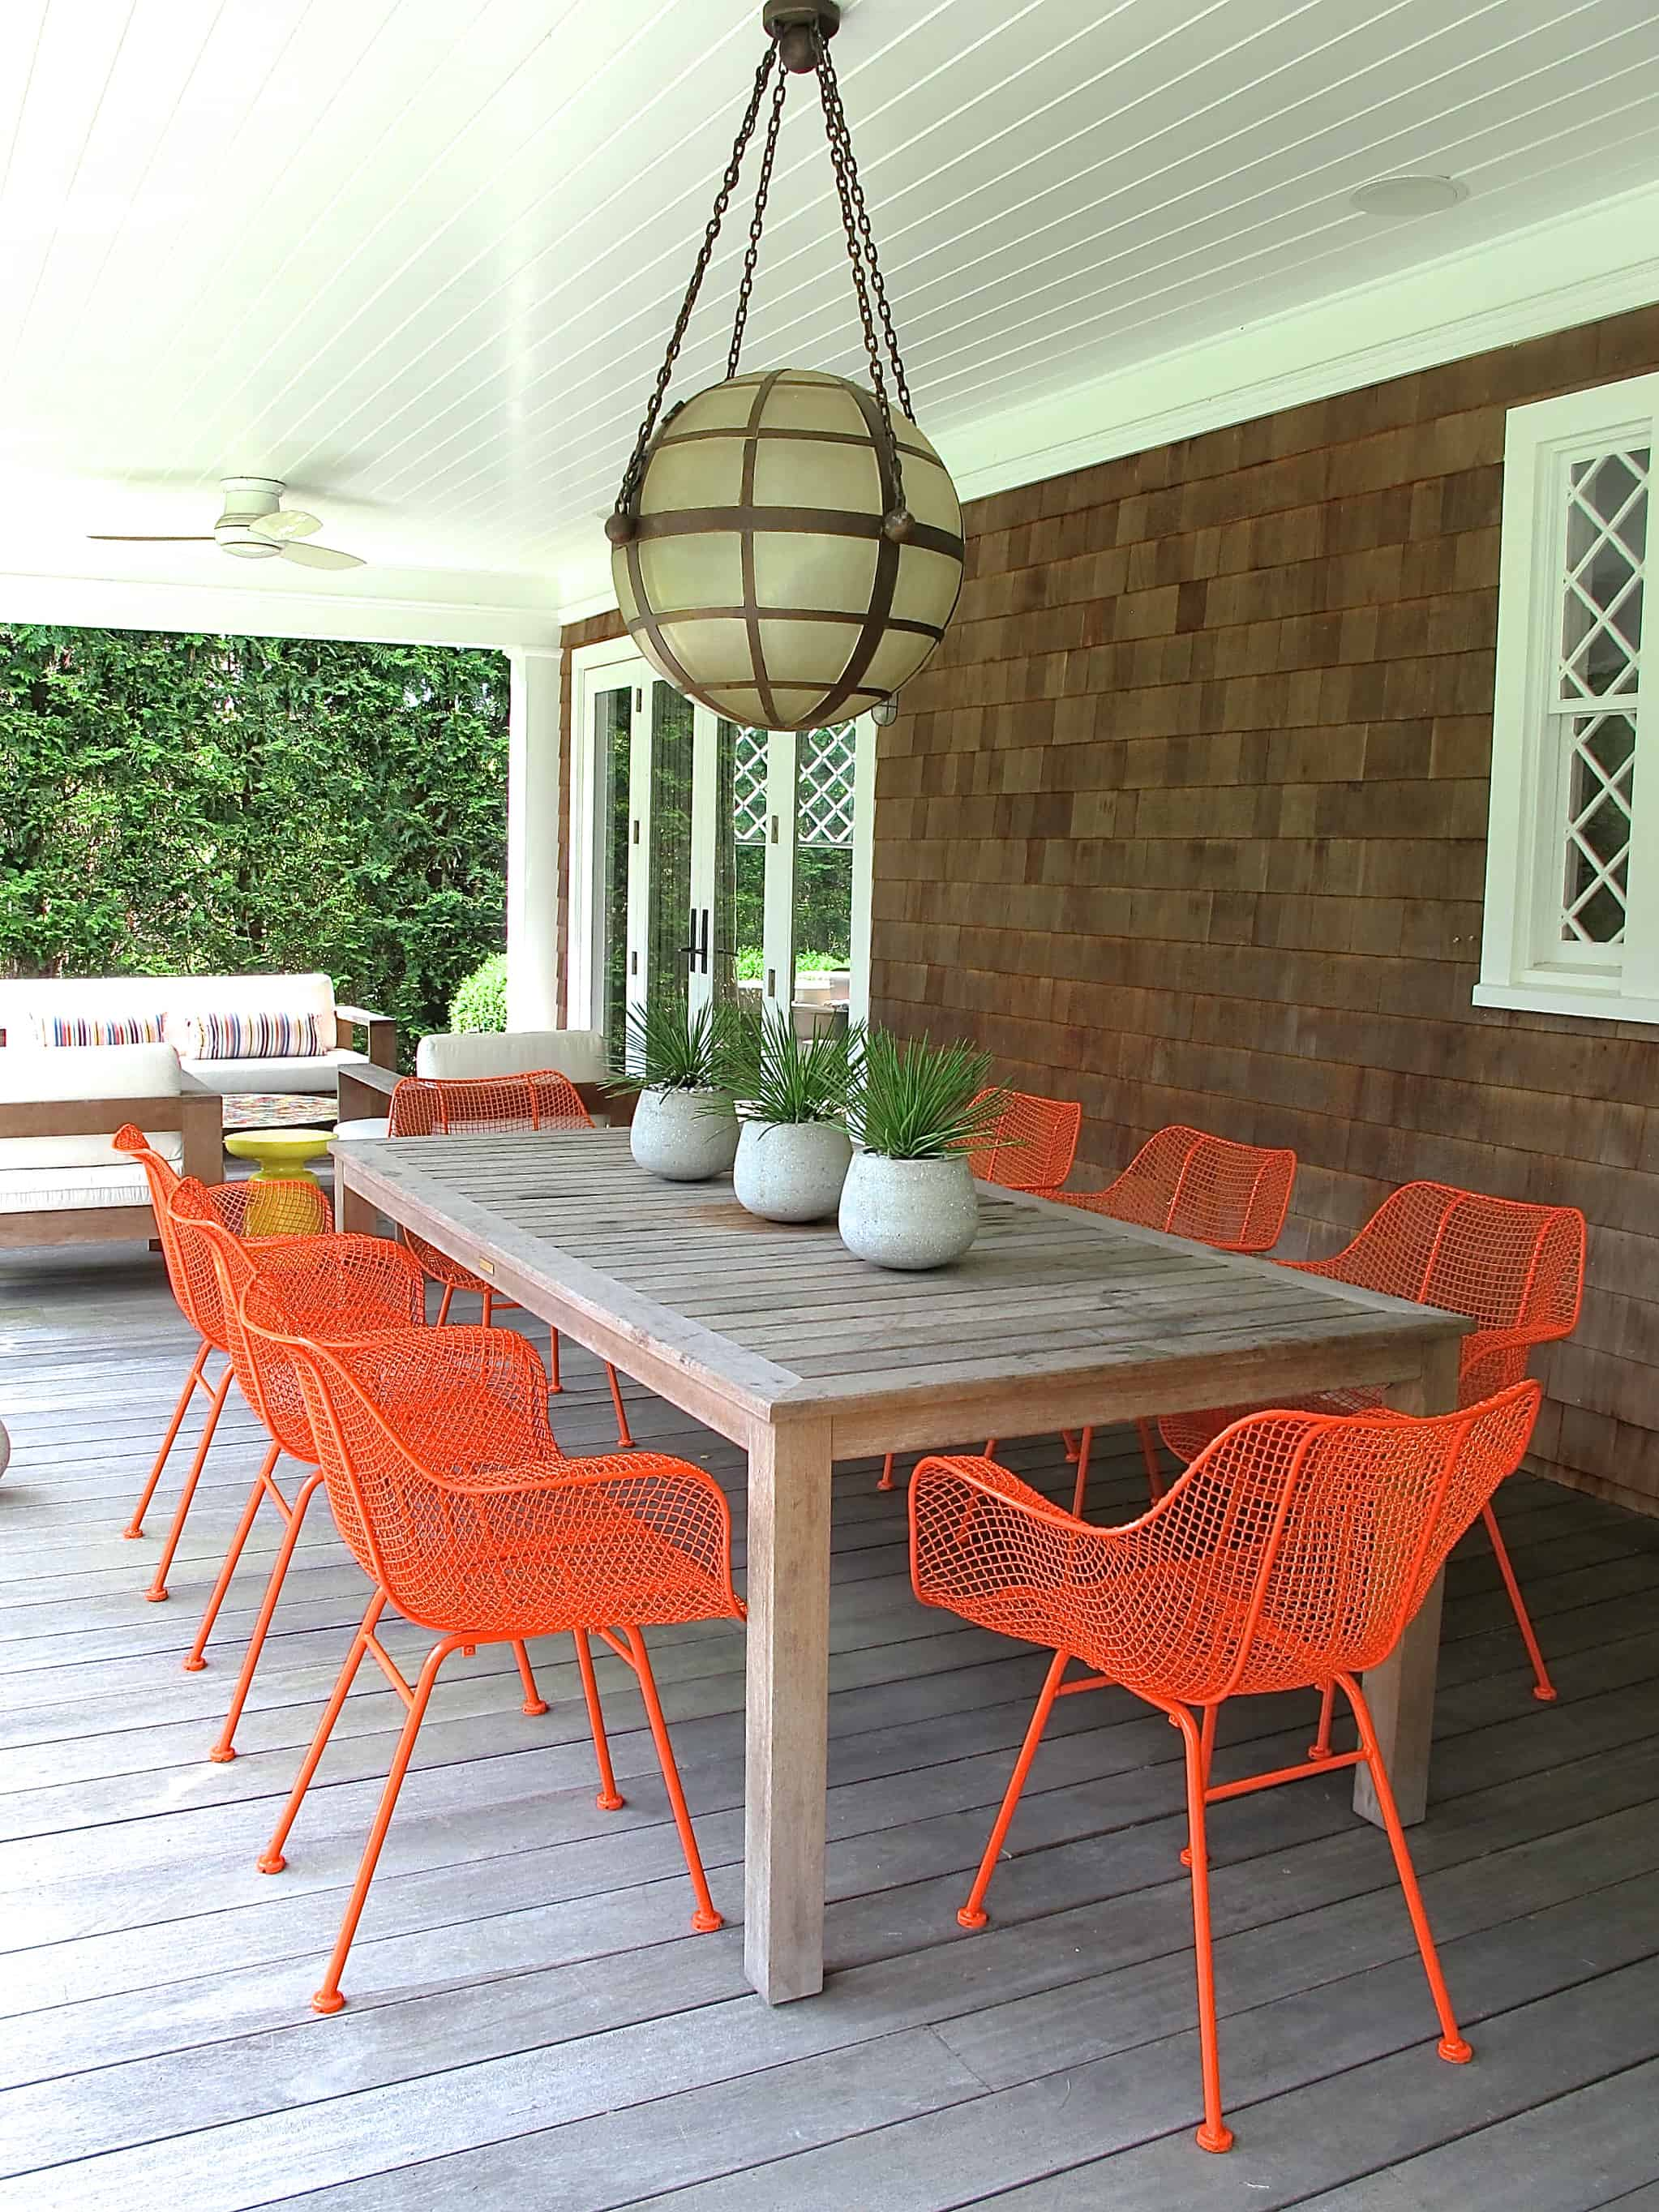 Pops of color are great to add on the outside and inside of your home.